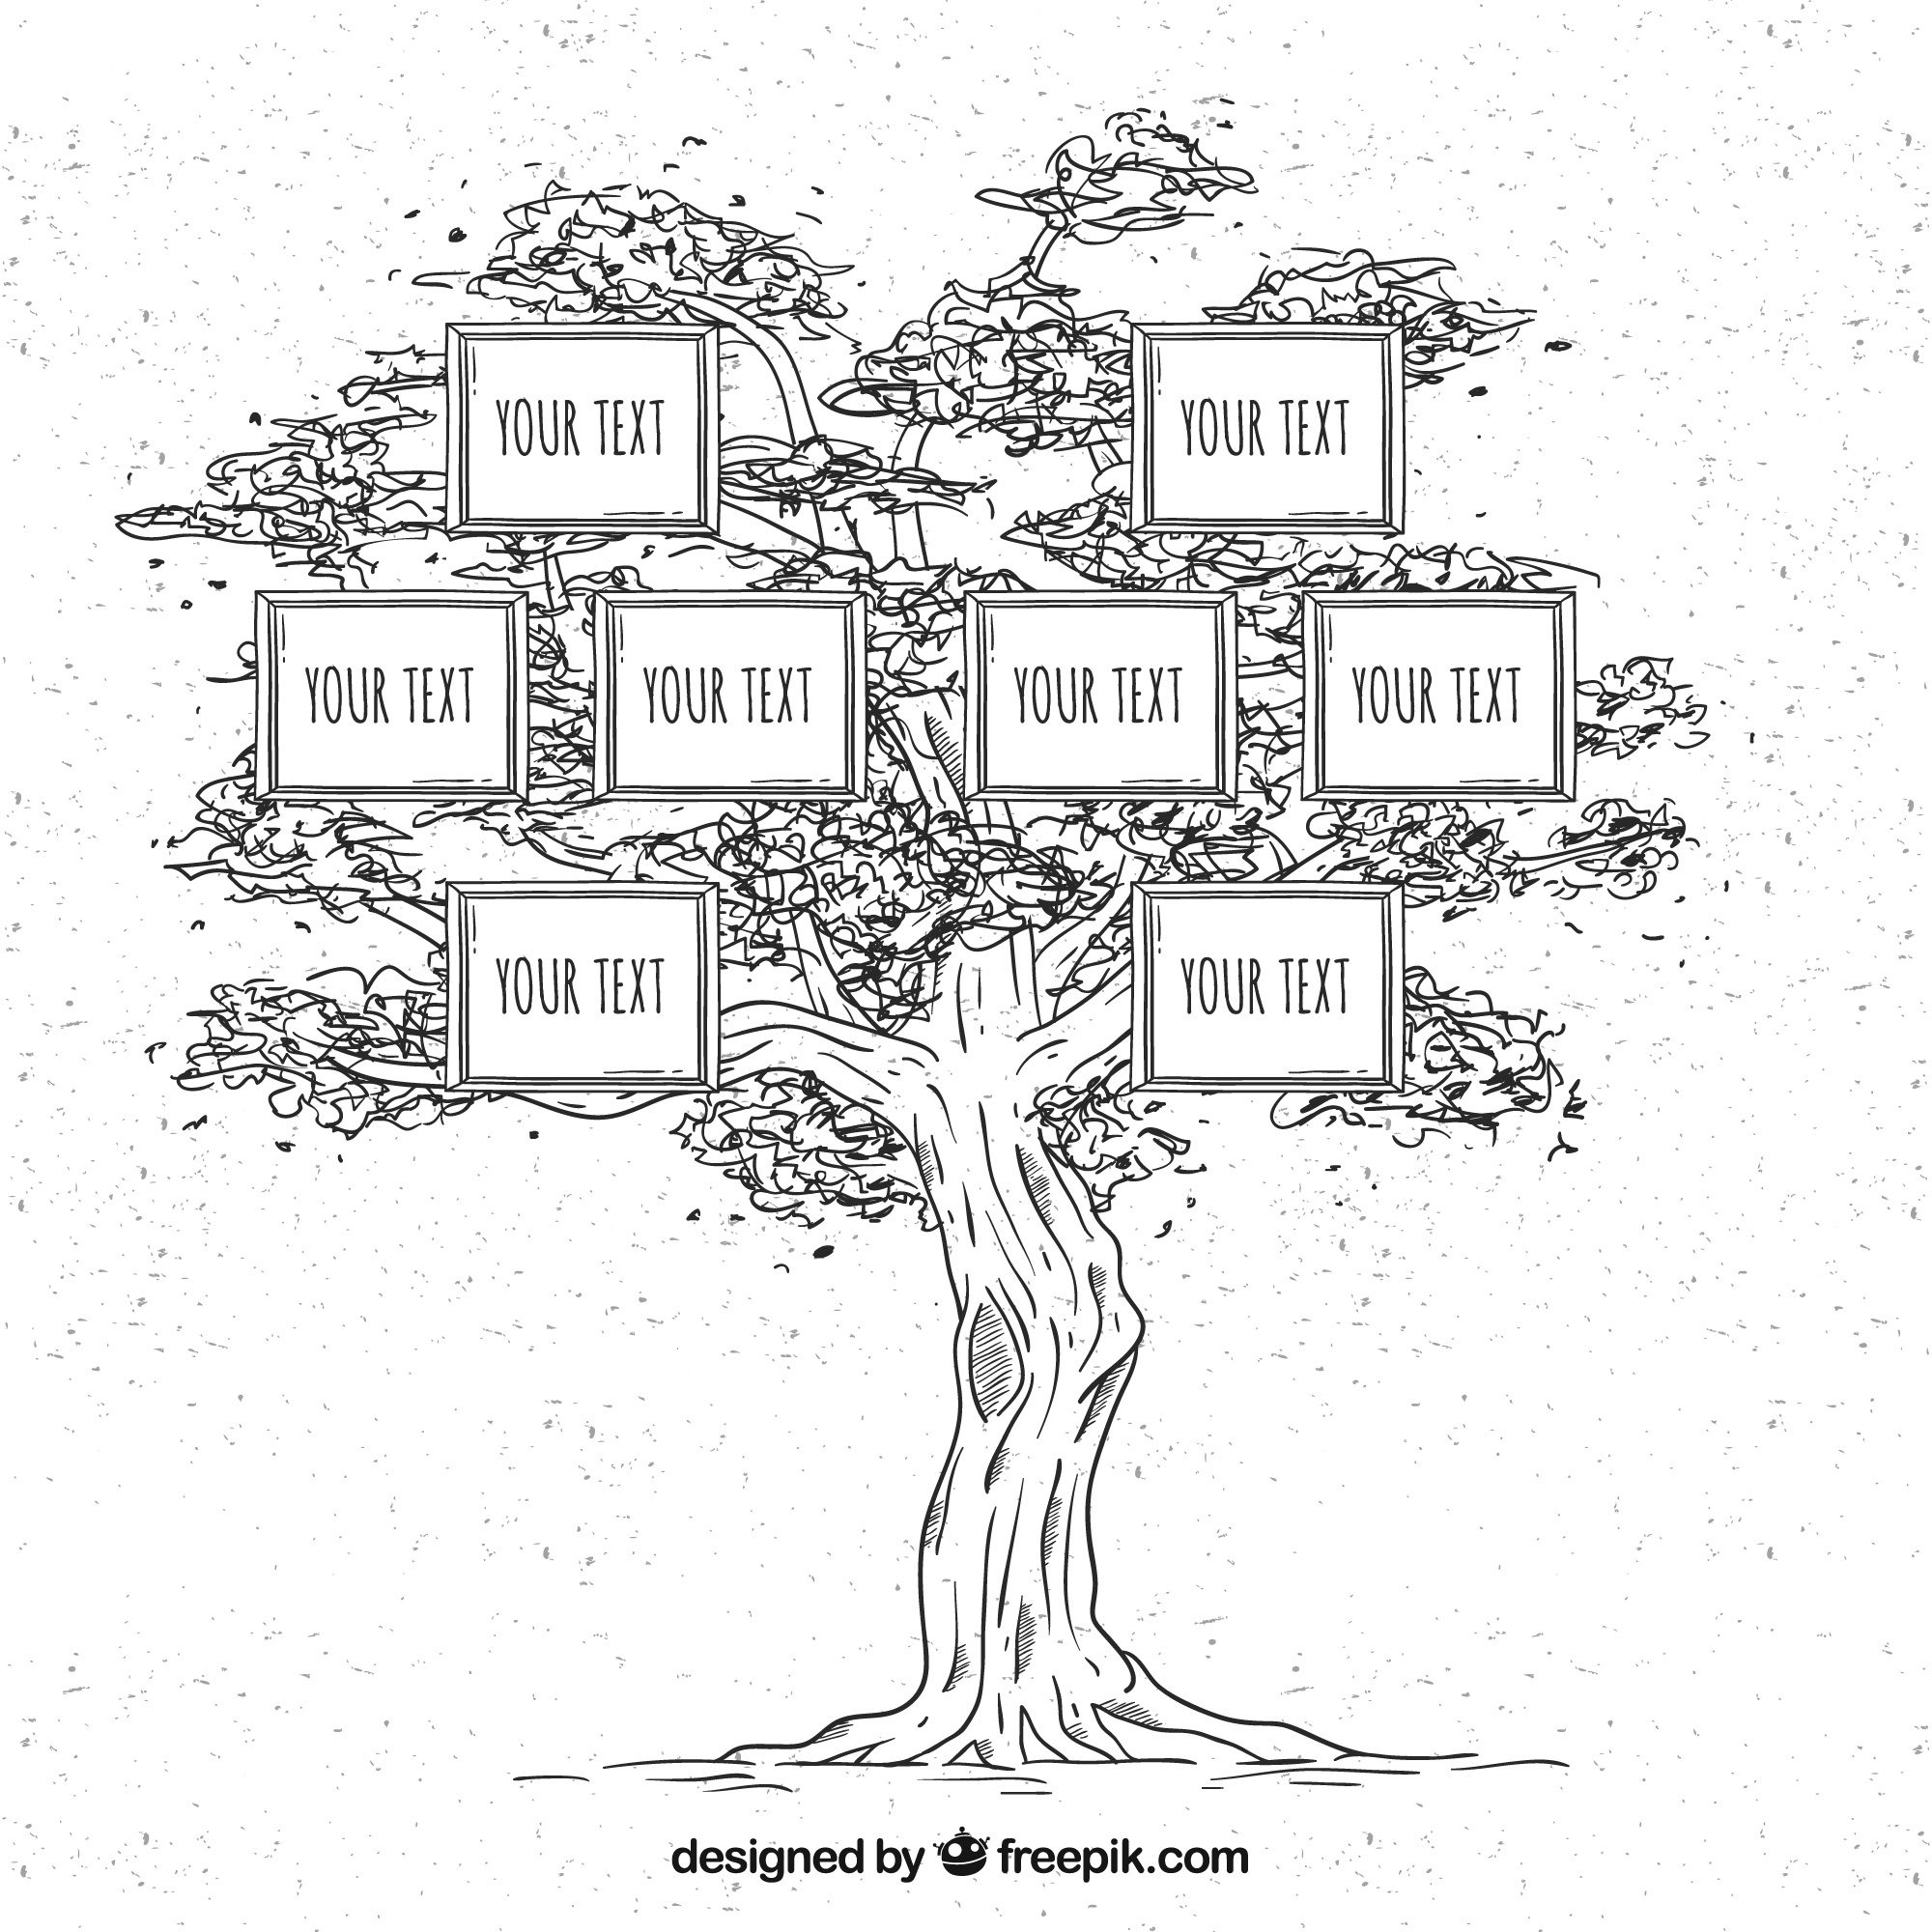 Hand-drawn family tree in vintage style